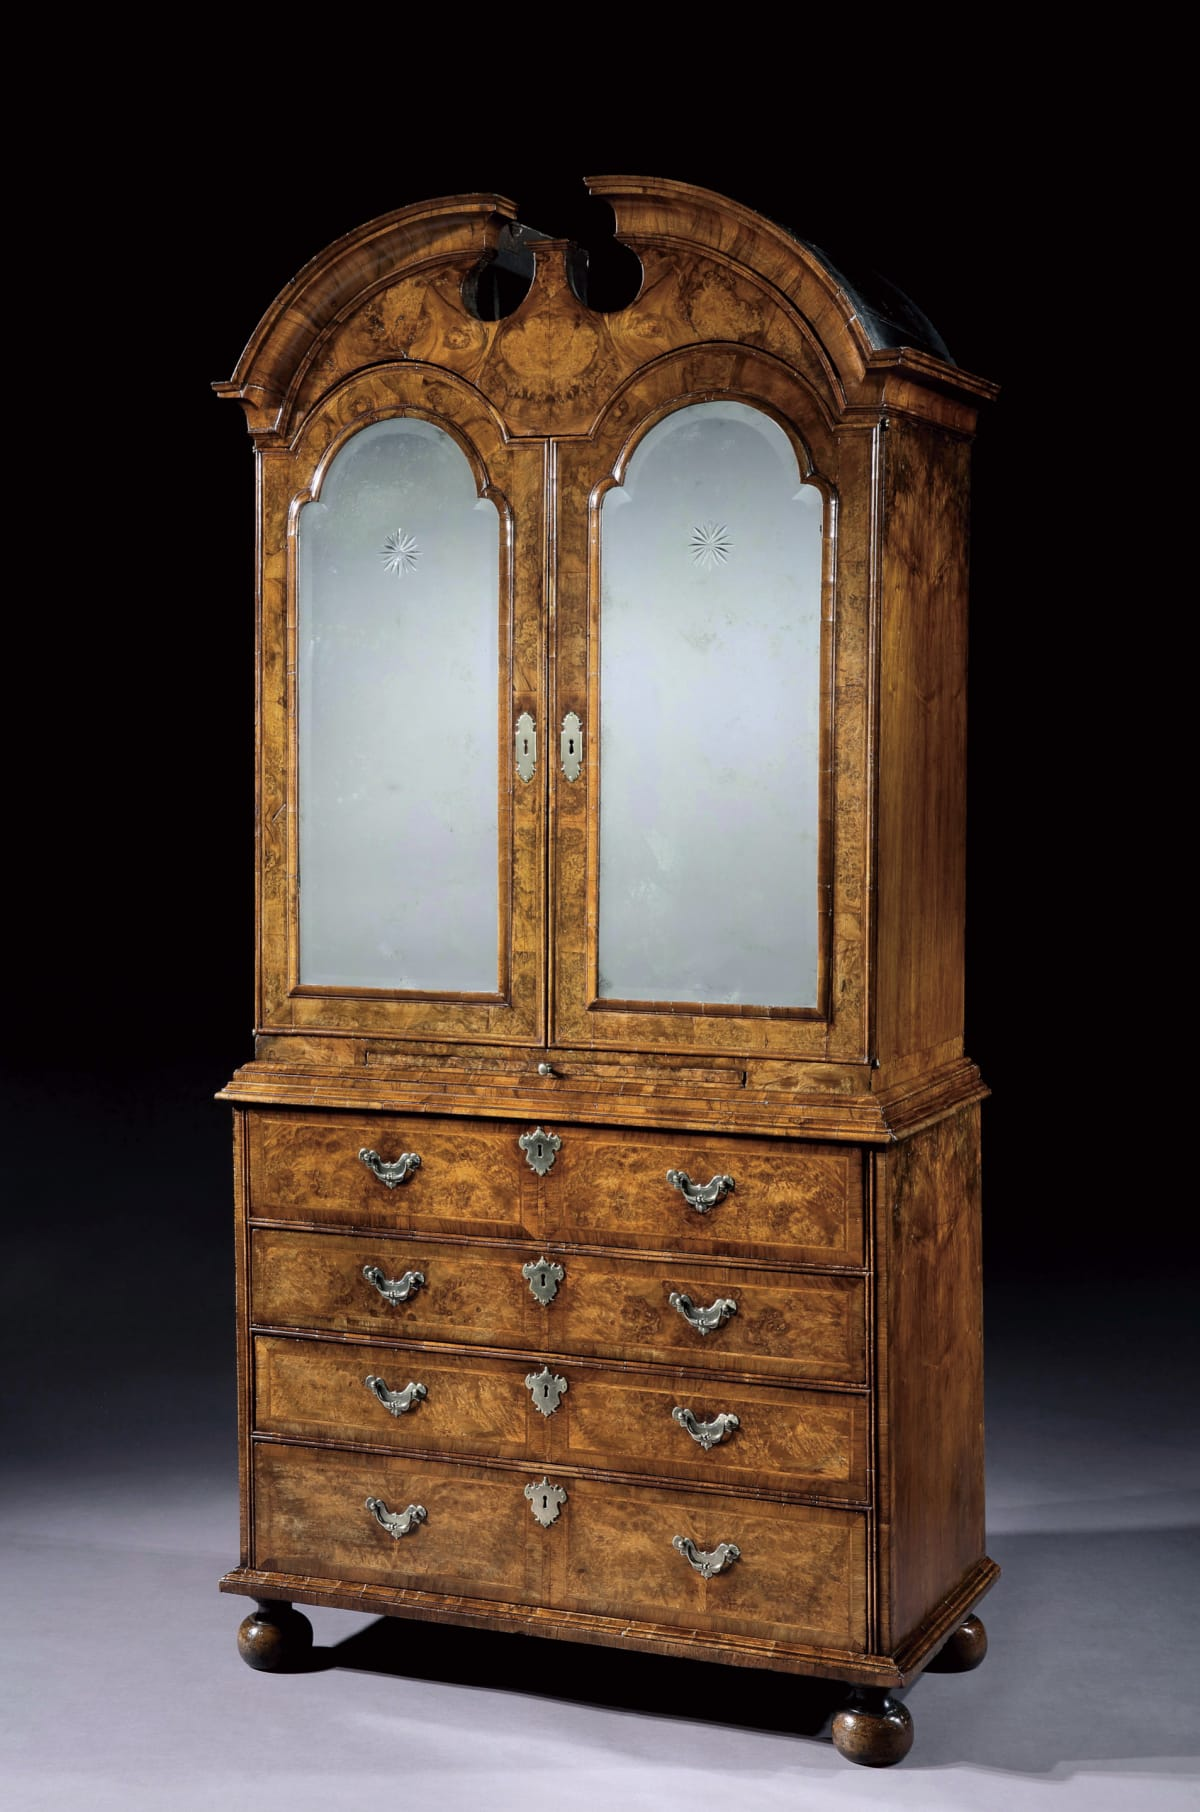 A GEORGE I BURR WALNUT SECRETAIRE CABINET. BY WILLIAM OLD AND JOHN ODY, ENGLISH, CIRCA 1720